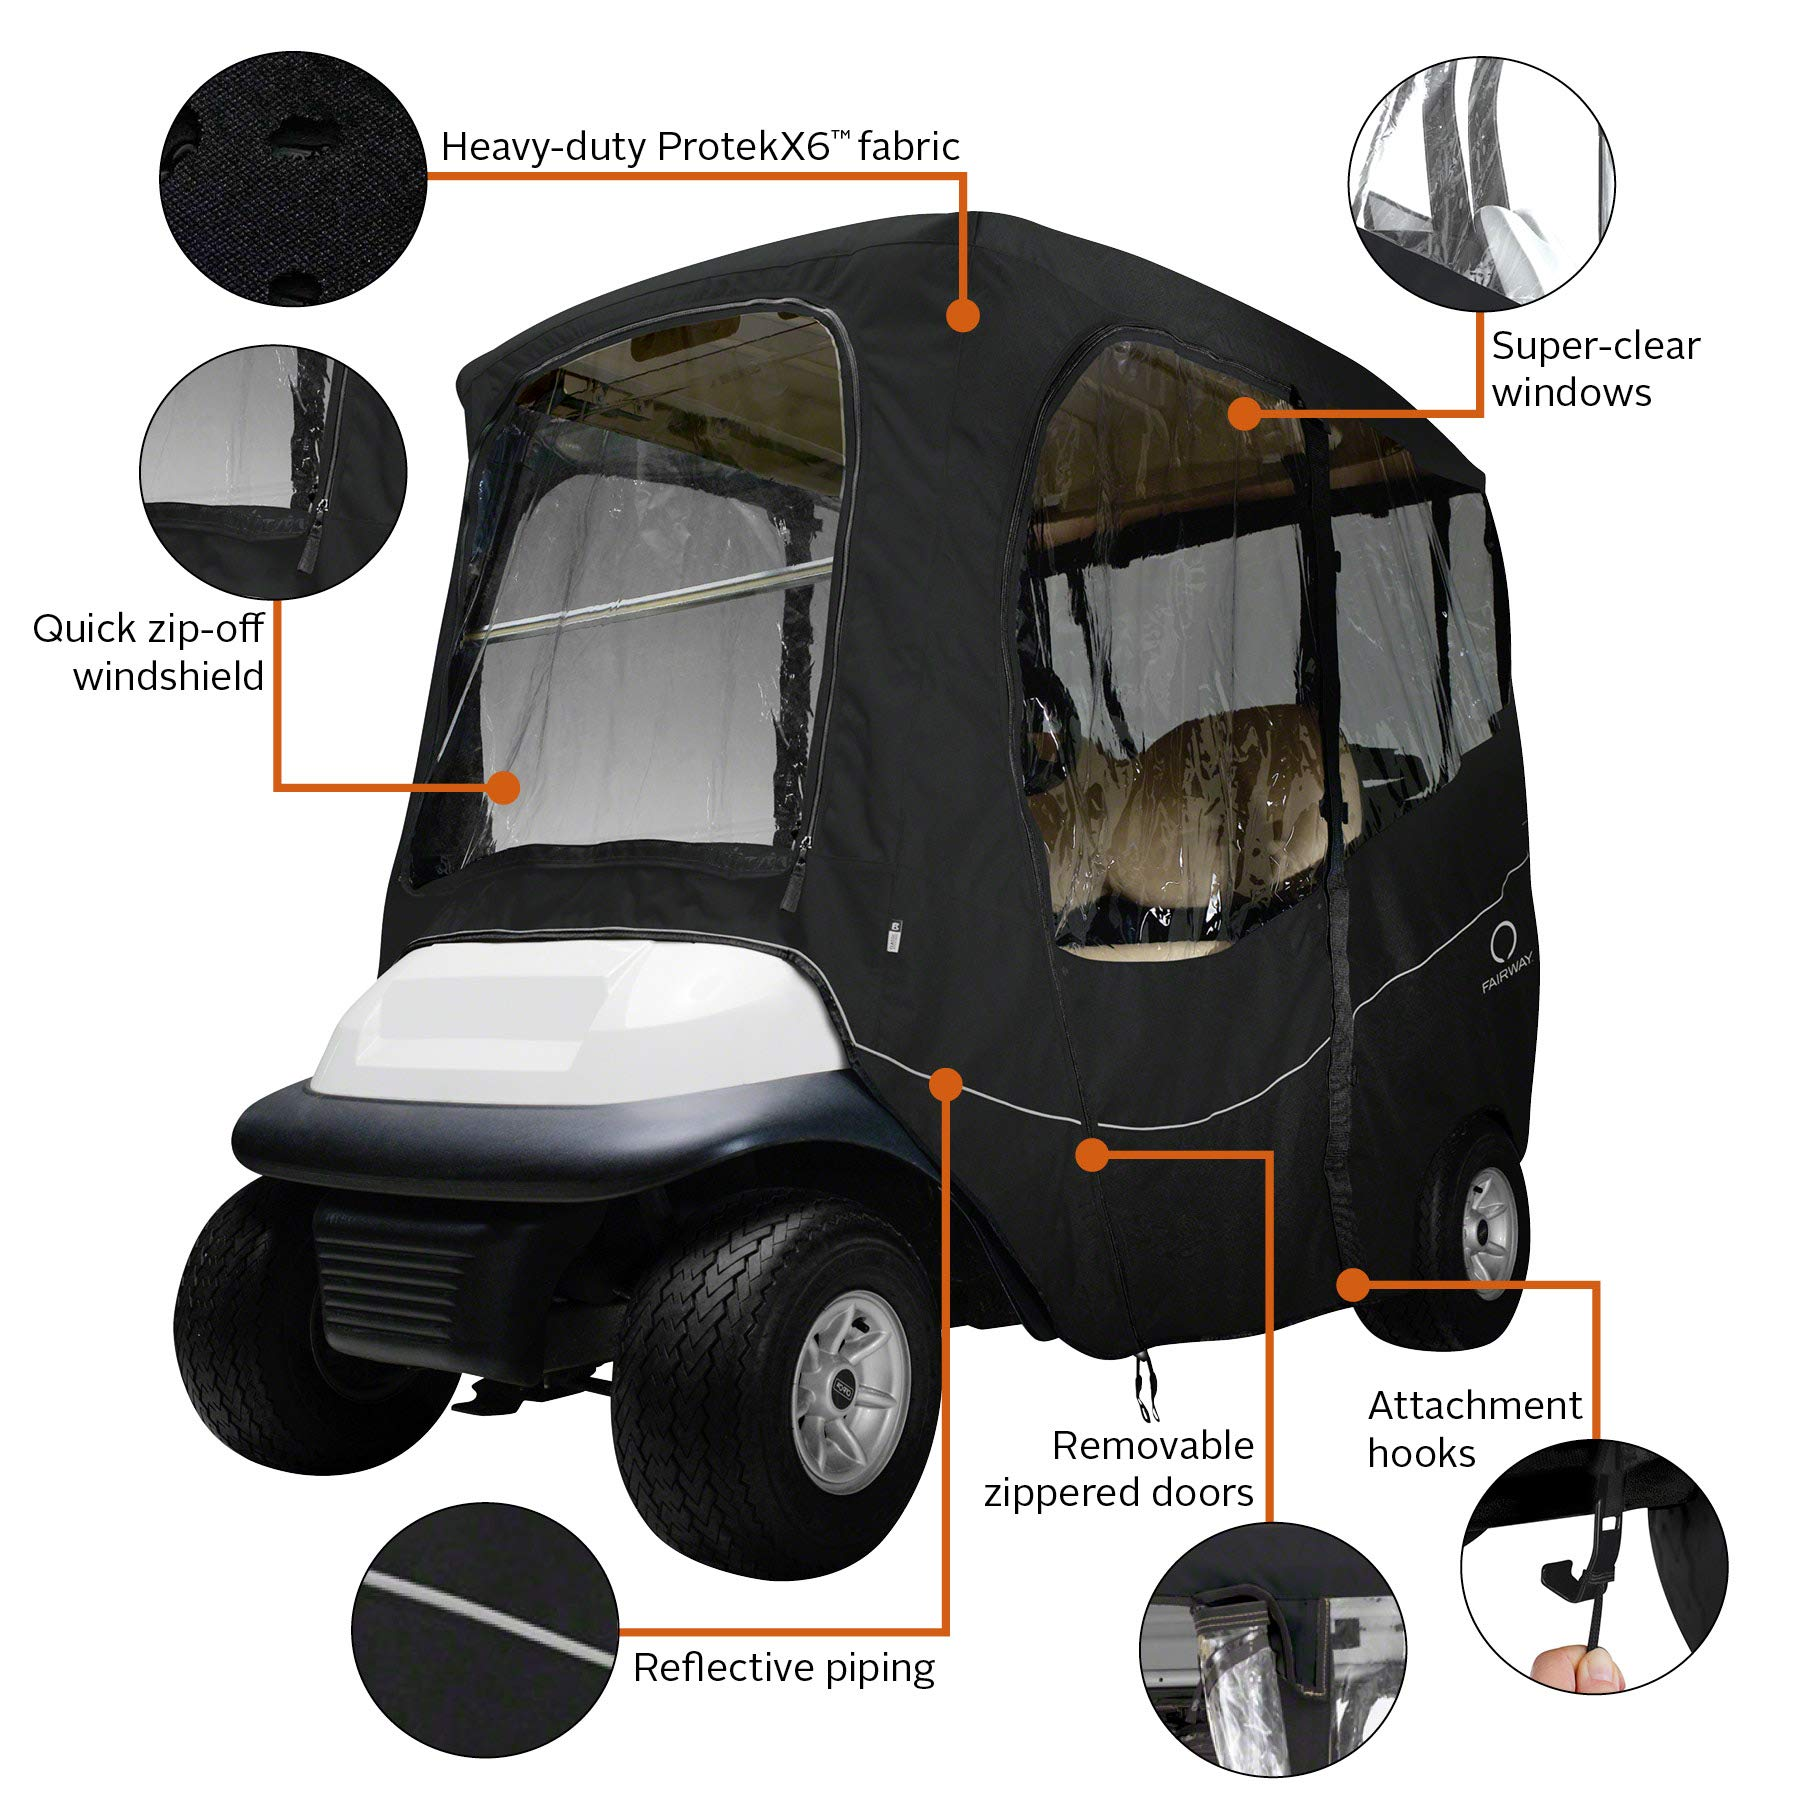 Classic Accessories Fairway Golf Cart Deluxe Enclosure, Black, Short Roof by Classic Accessories (Image #3)